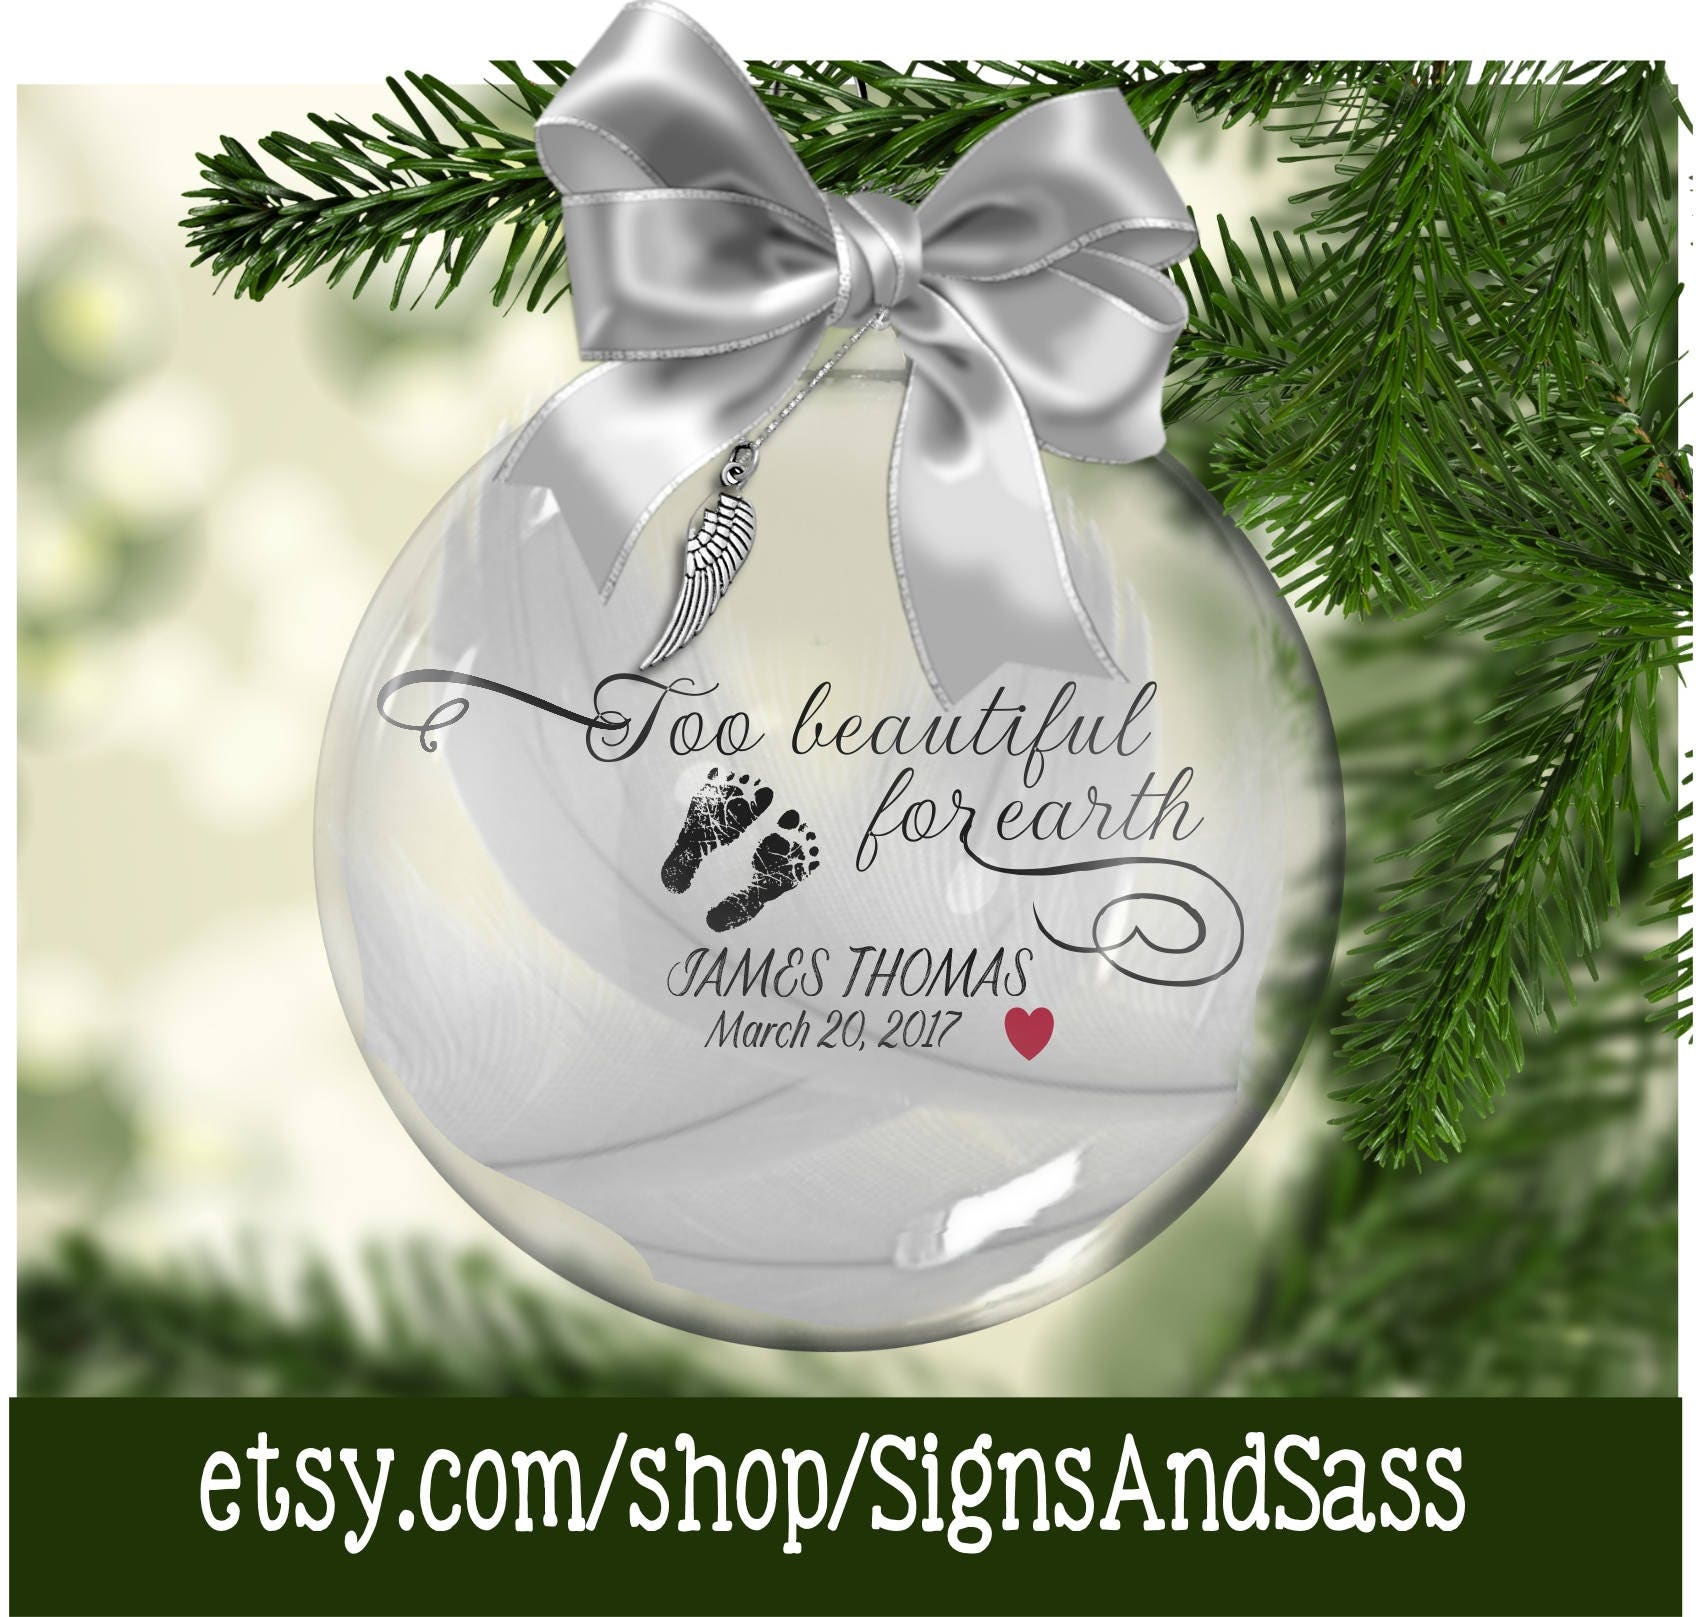 Too Beautiful For Earth Personalized Floating Glass Ornament | Etsy